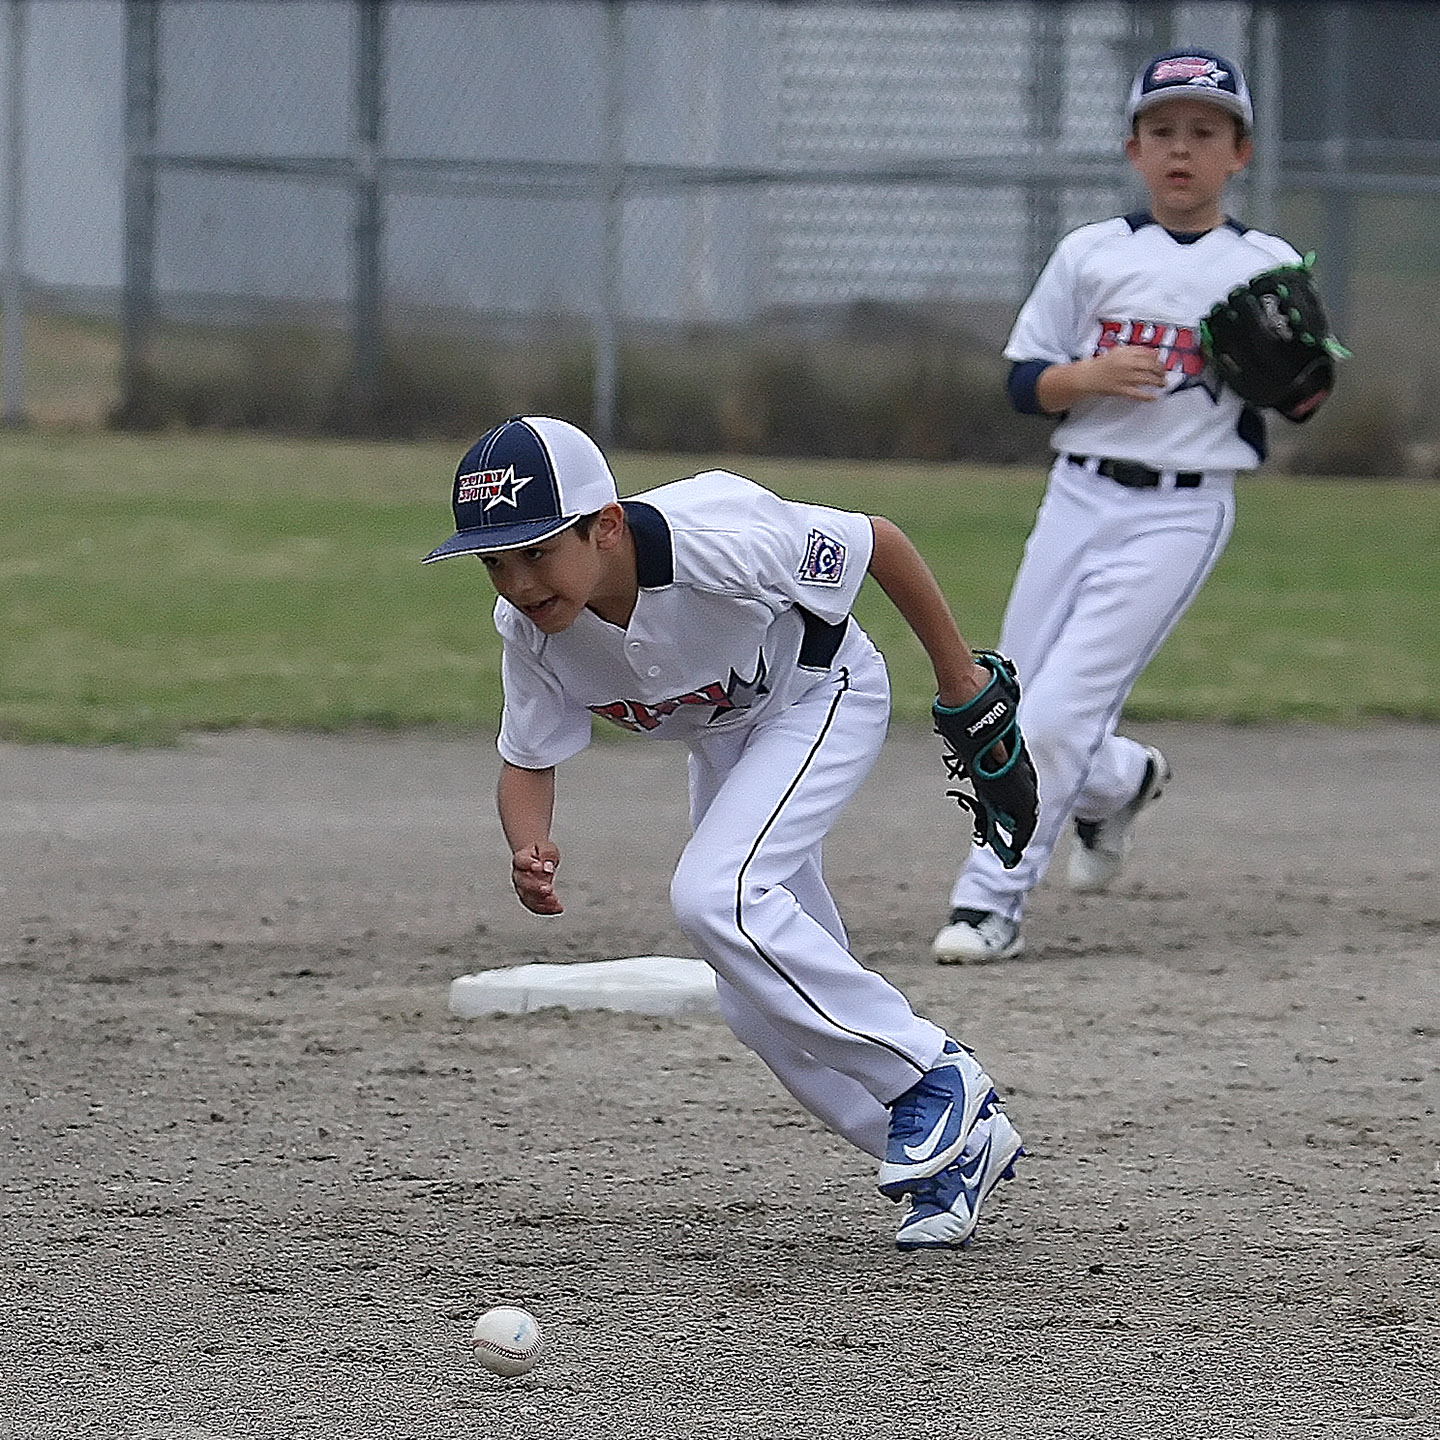 Shortstop Luis Sanchez of South Highline Nationals can't get to the ball.